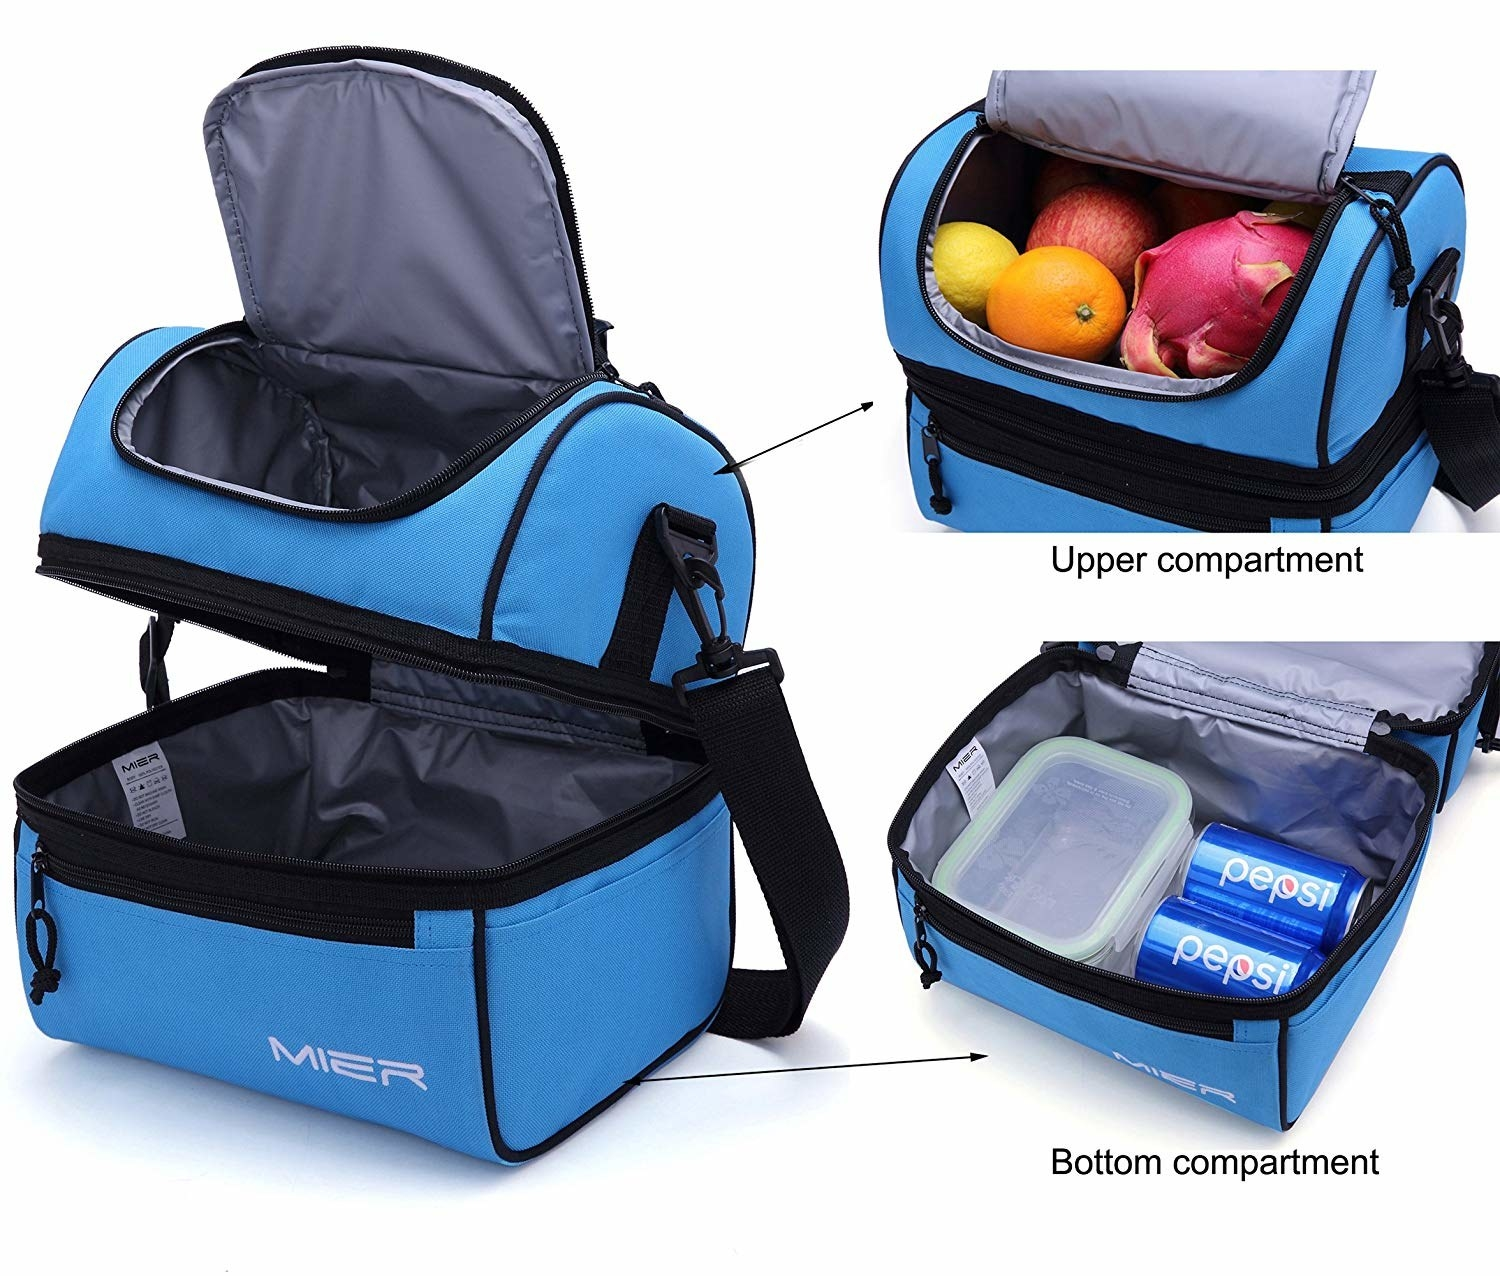 9c24c0a77ef5 15 Lunch Boxes You Can Get On Amazon That People Actually Swear By